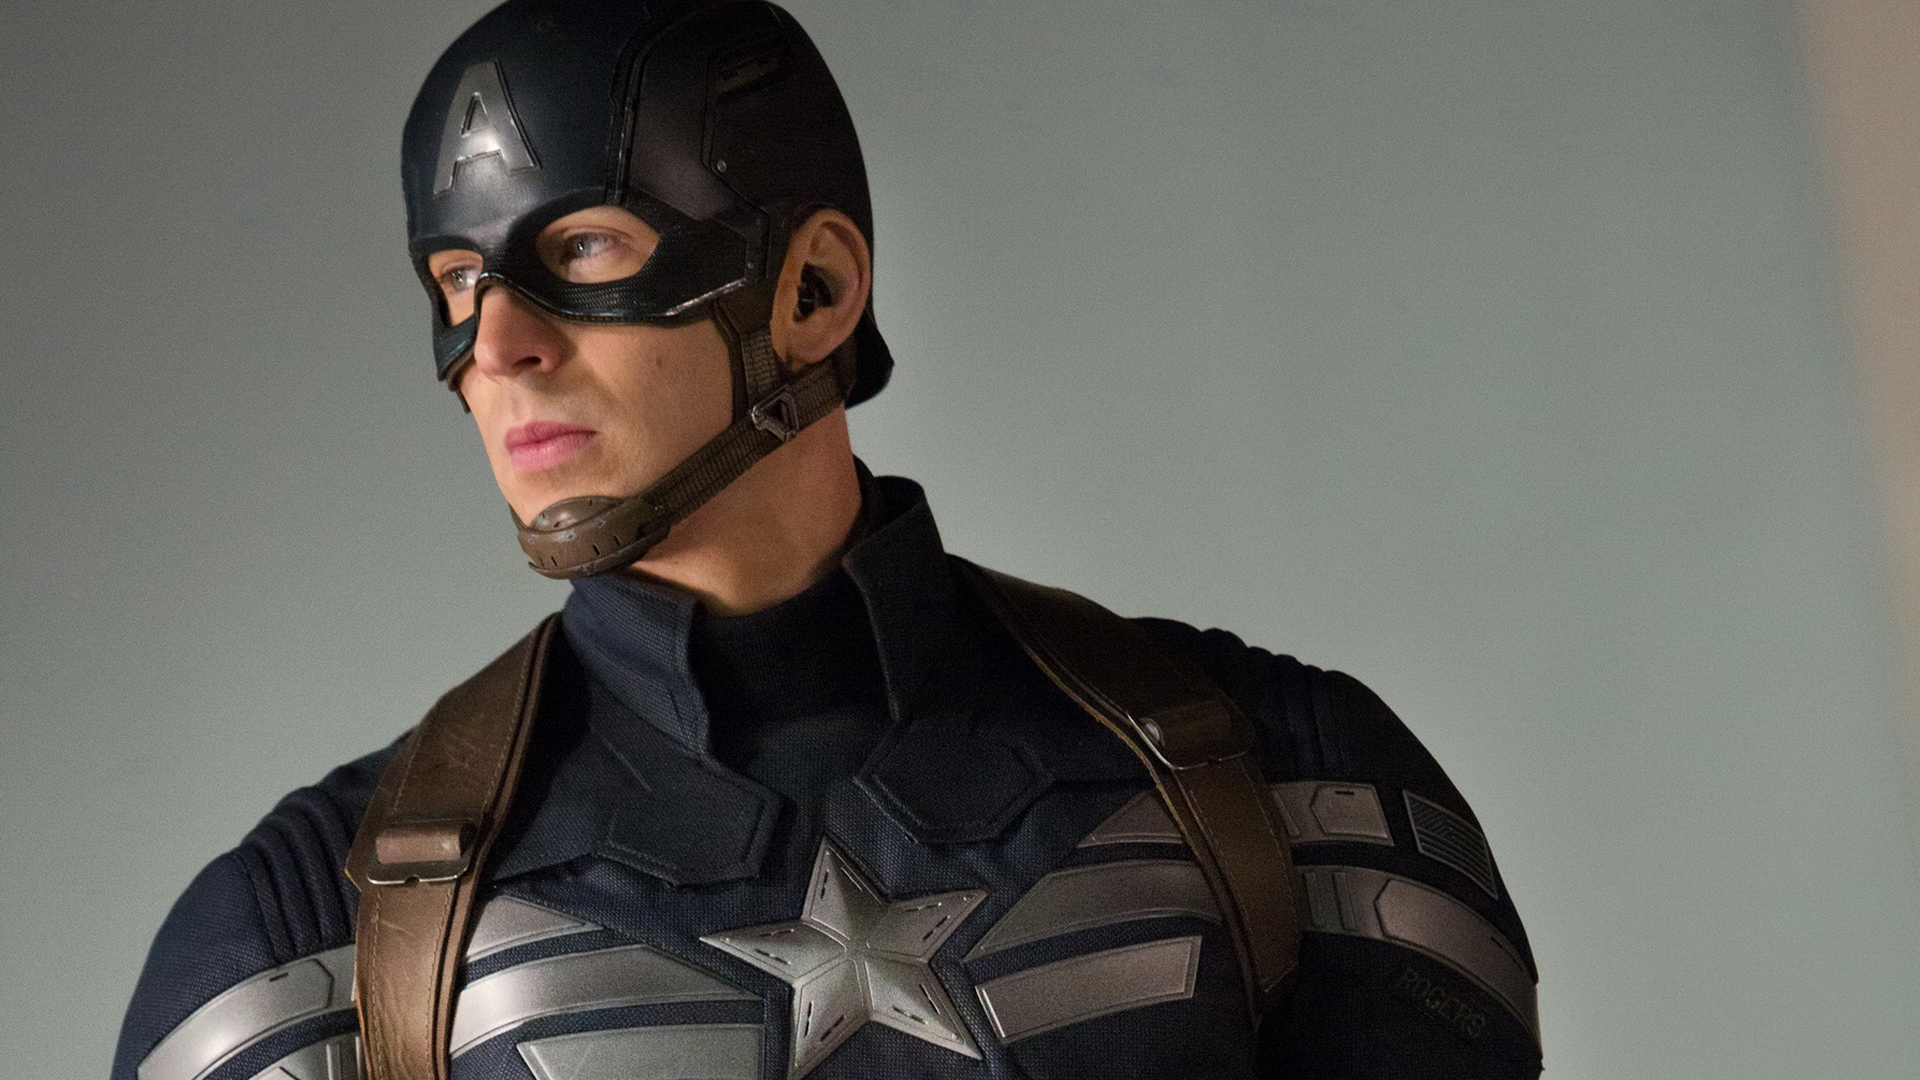 captain america winten solder movie 5m hd wallpaper